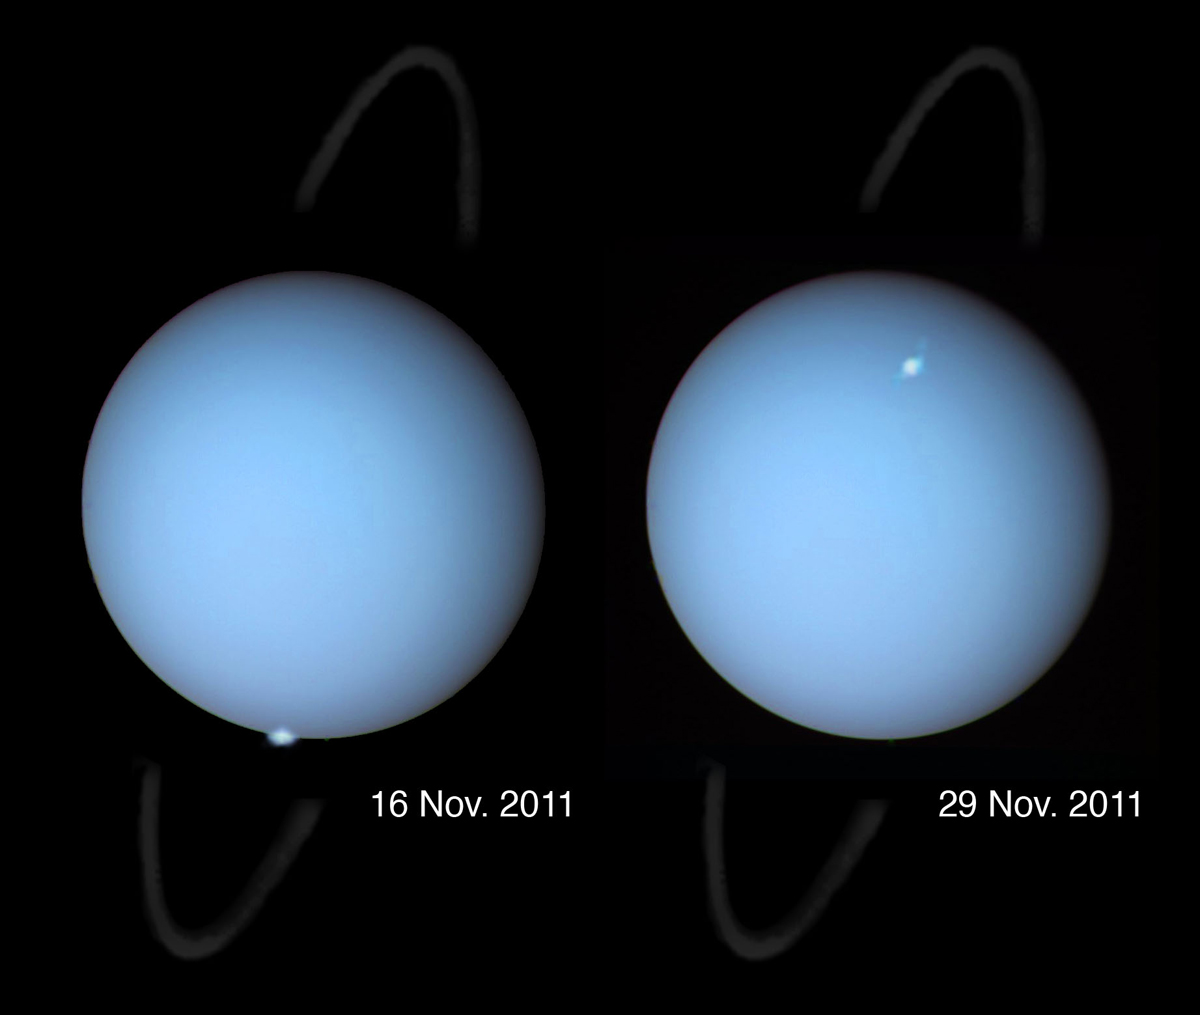 Rare Photo: Auroras on Uranus Spotted by Hubble Telescope